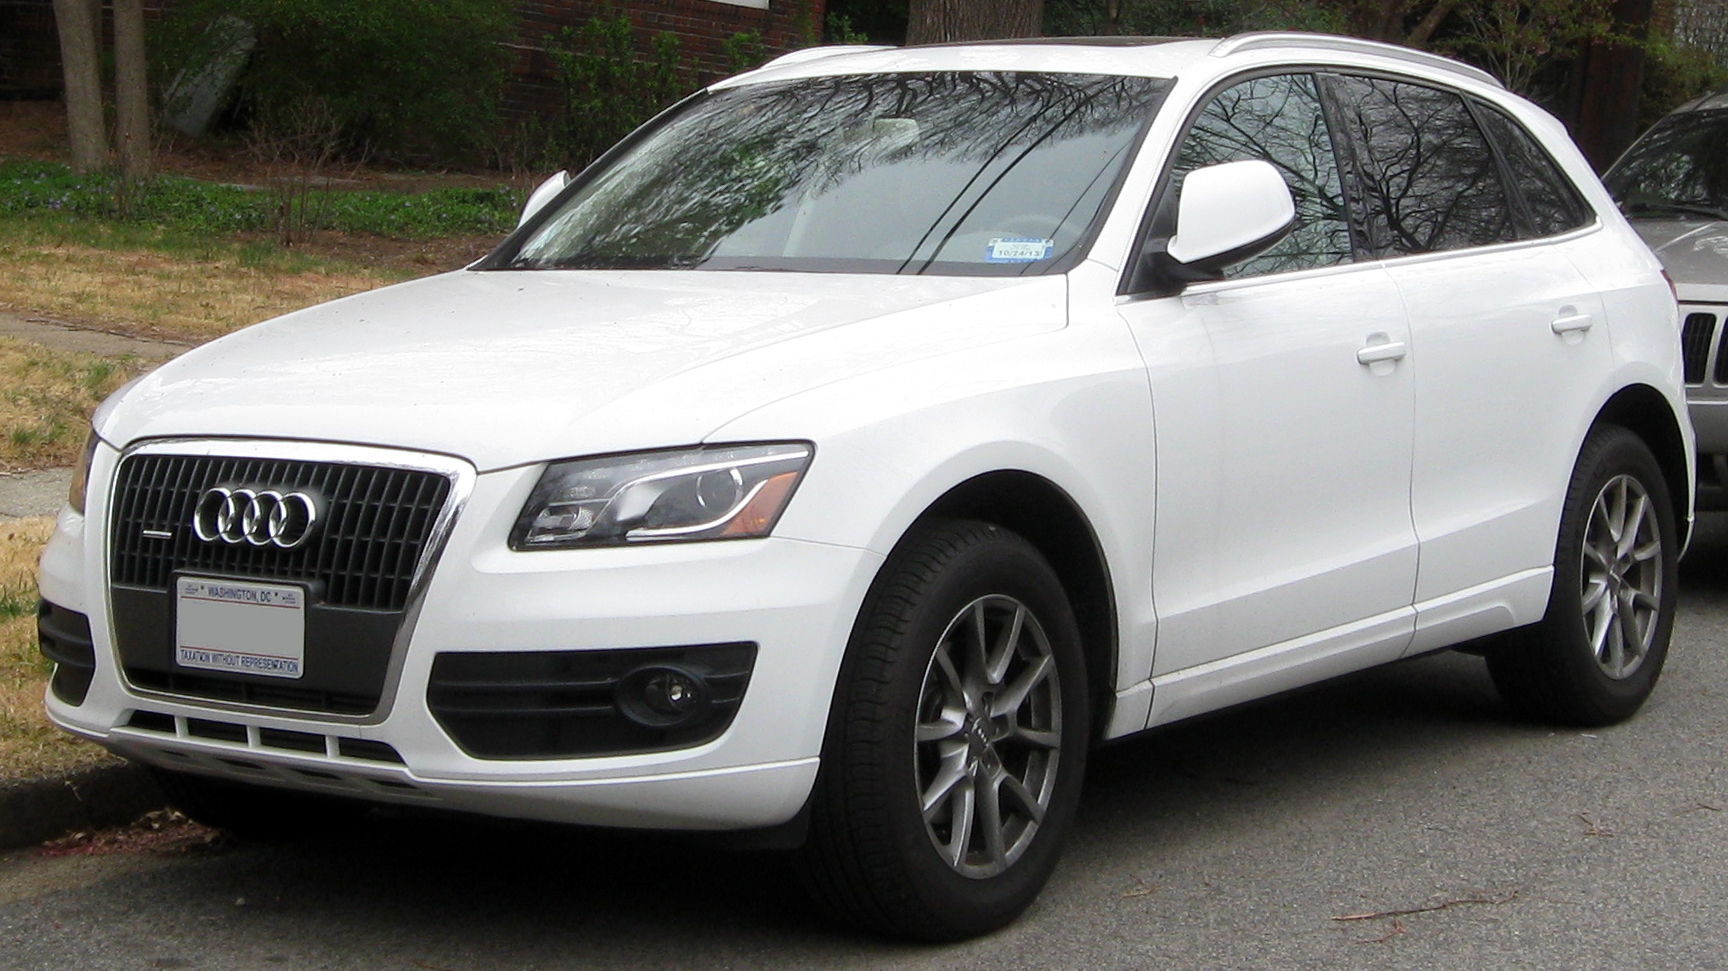 Audi Q5 Wikipedia >> File:Audi Q5 -- 03-16-2012.JPG - Wikimedia Commons